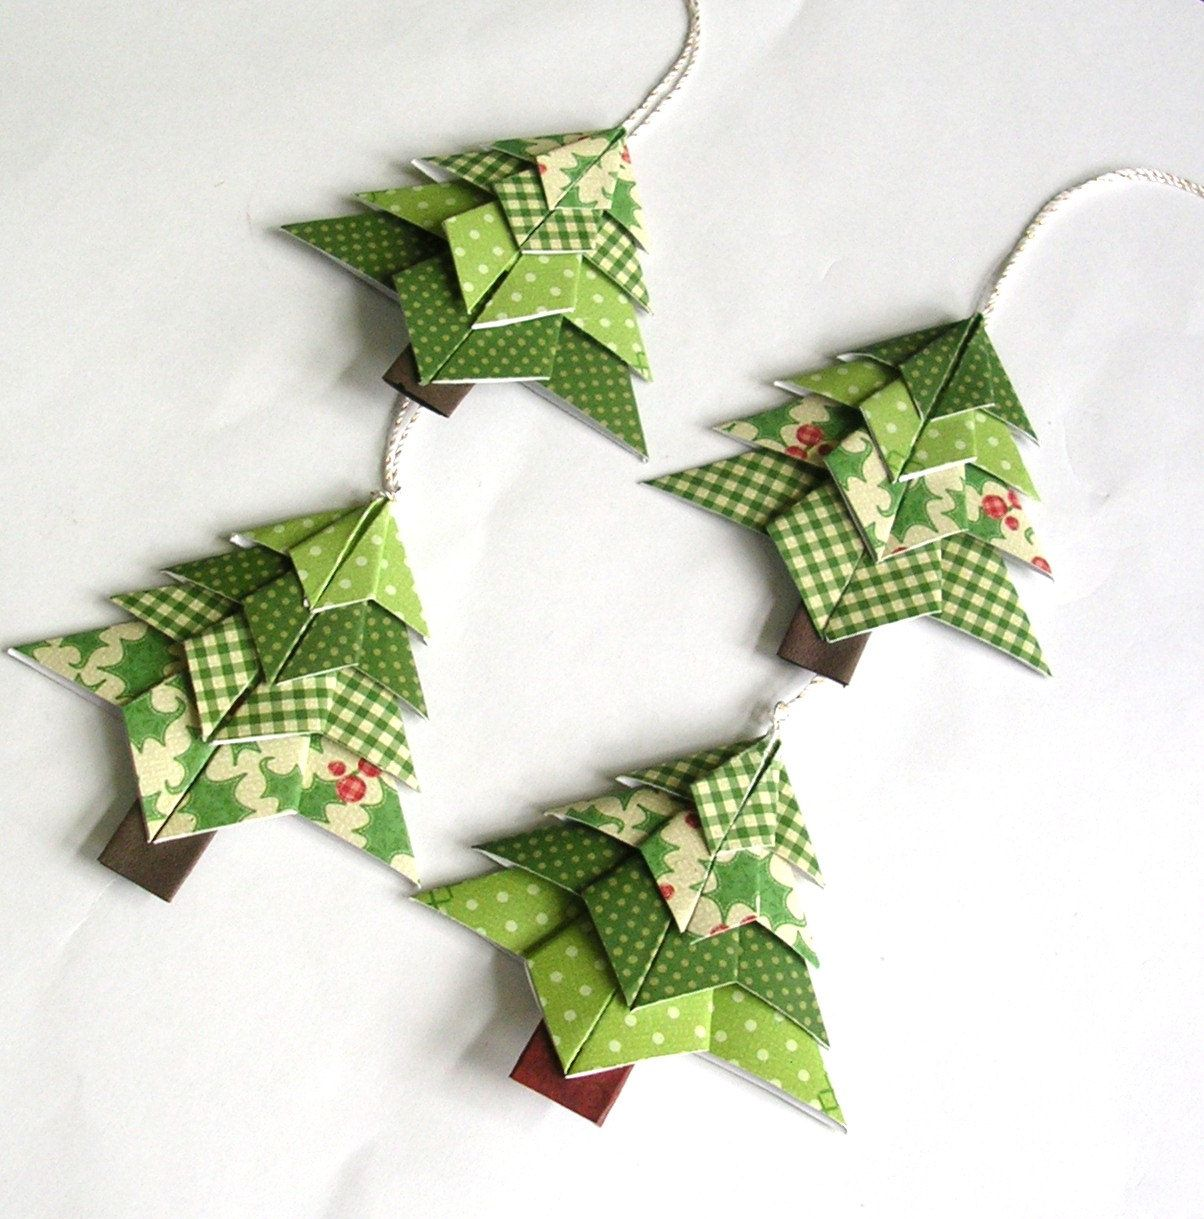 Green The Color Of Nature Is Relaxing Fashionable And Beautiful It Creates A Cal Paper Christmas Ornaments Origami Christmas Tree Origami Christmas Ornament